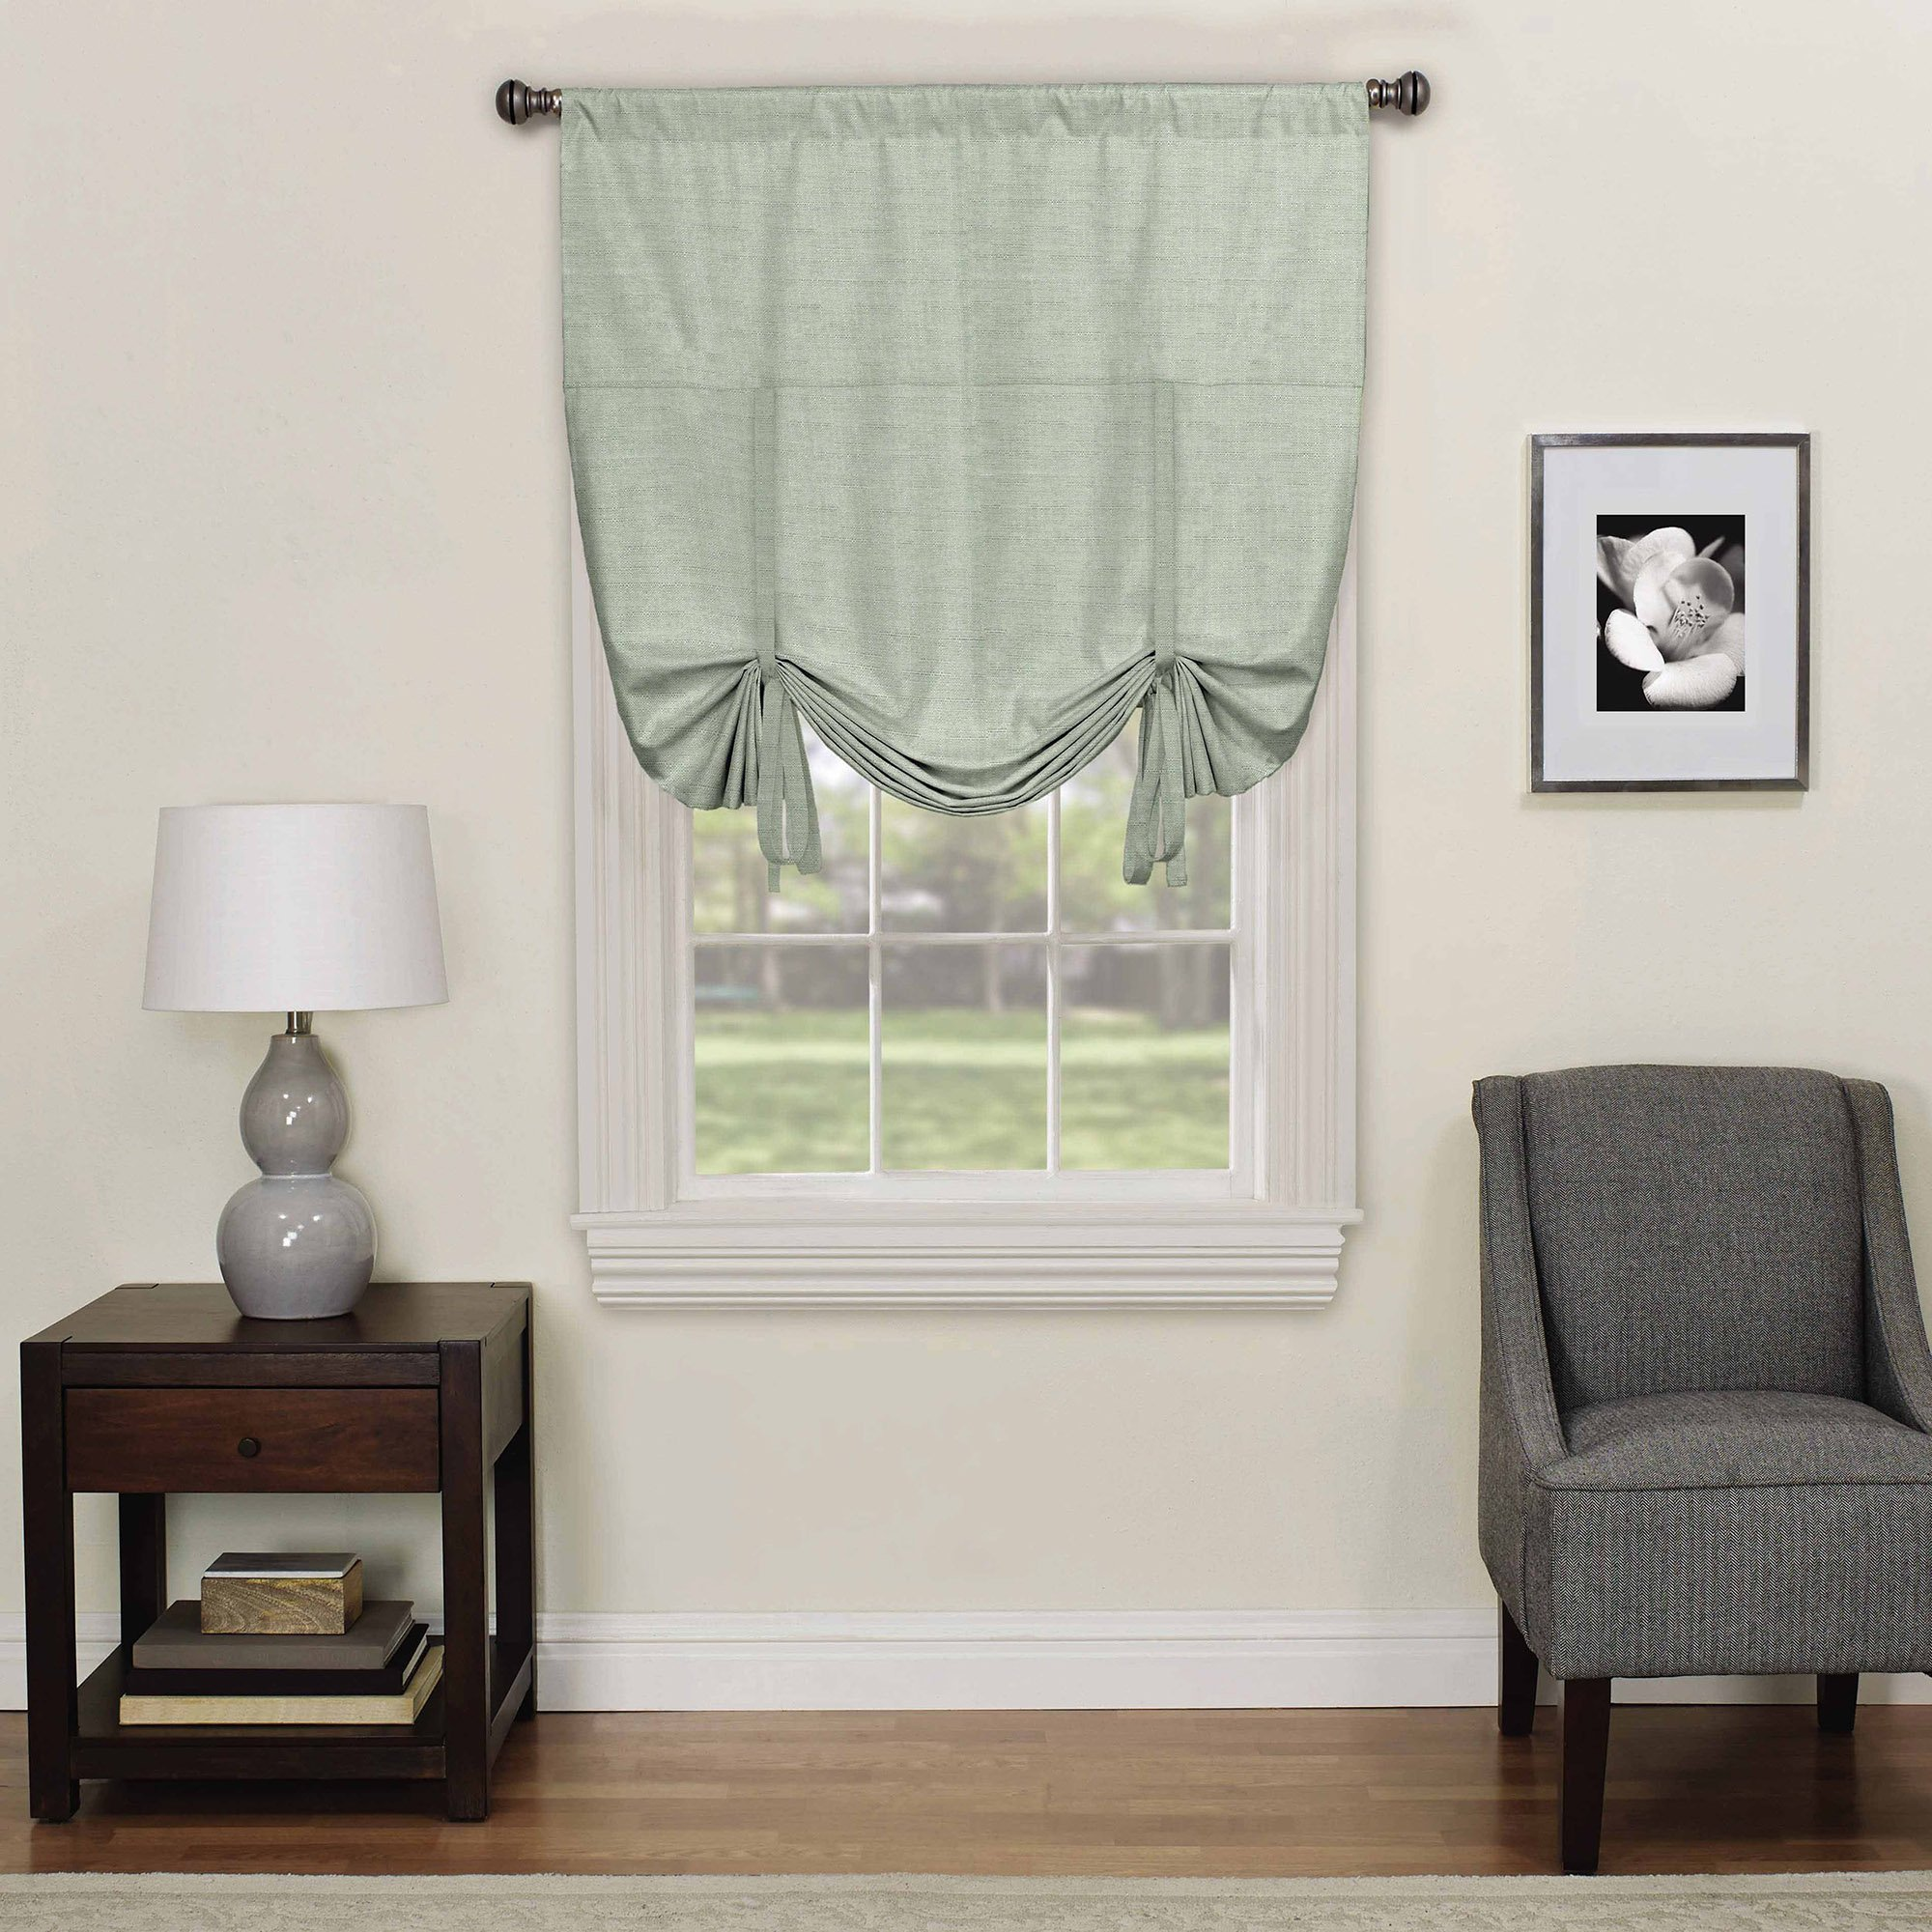 Eclipse 16170042X063SPA Kendall 42-inch by 63-inch Blackout Window Single Tie-up Shade, Spa